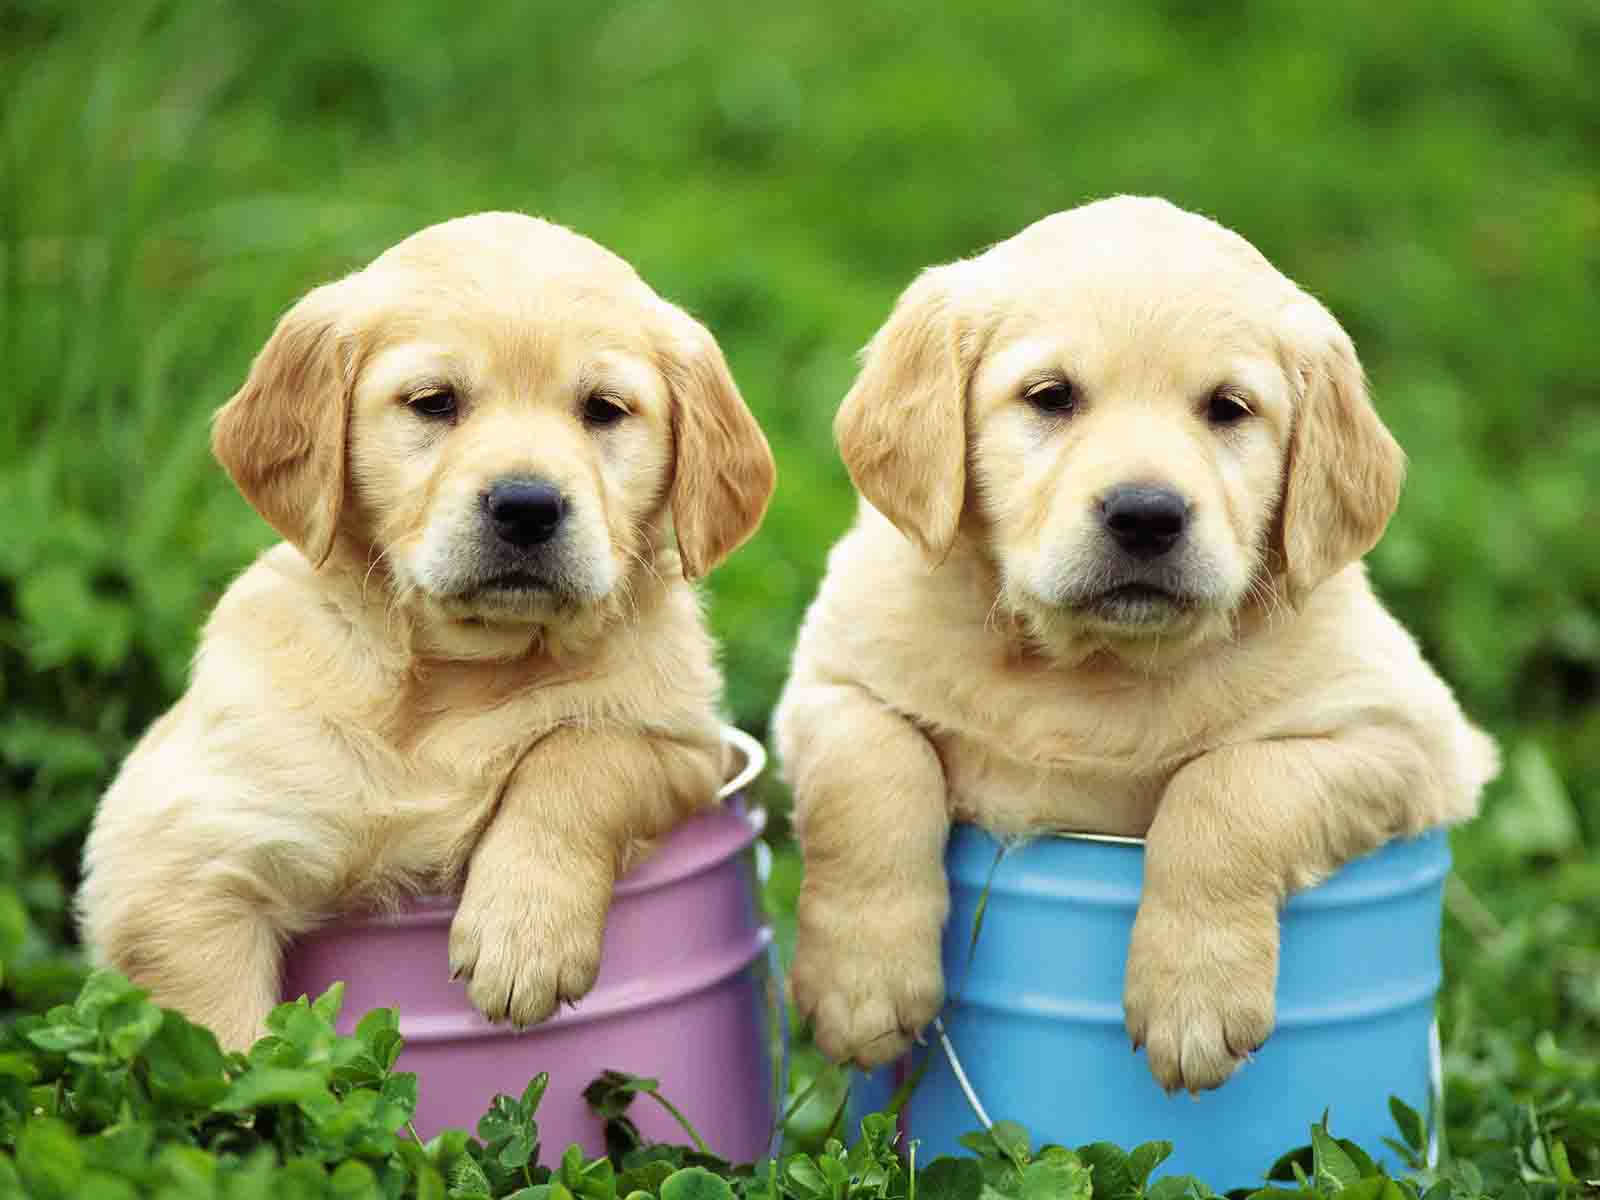 actress movie popular CUTE PUPPY HD WALLPAPERS 1600x1200